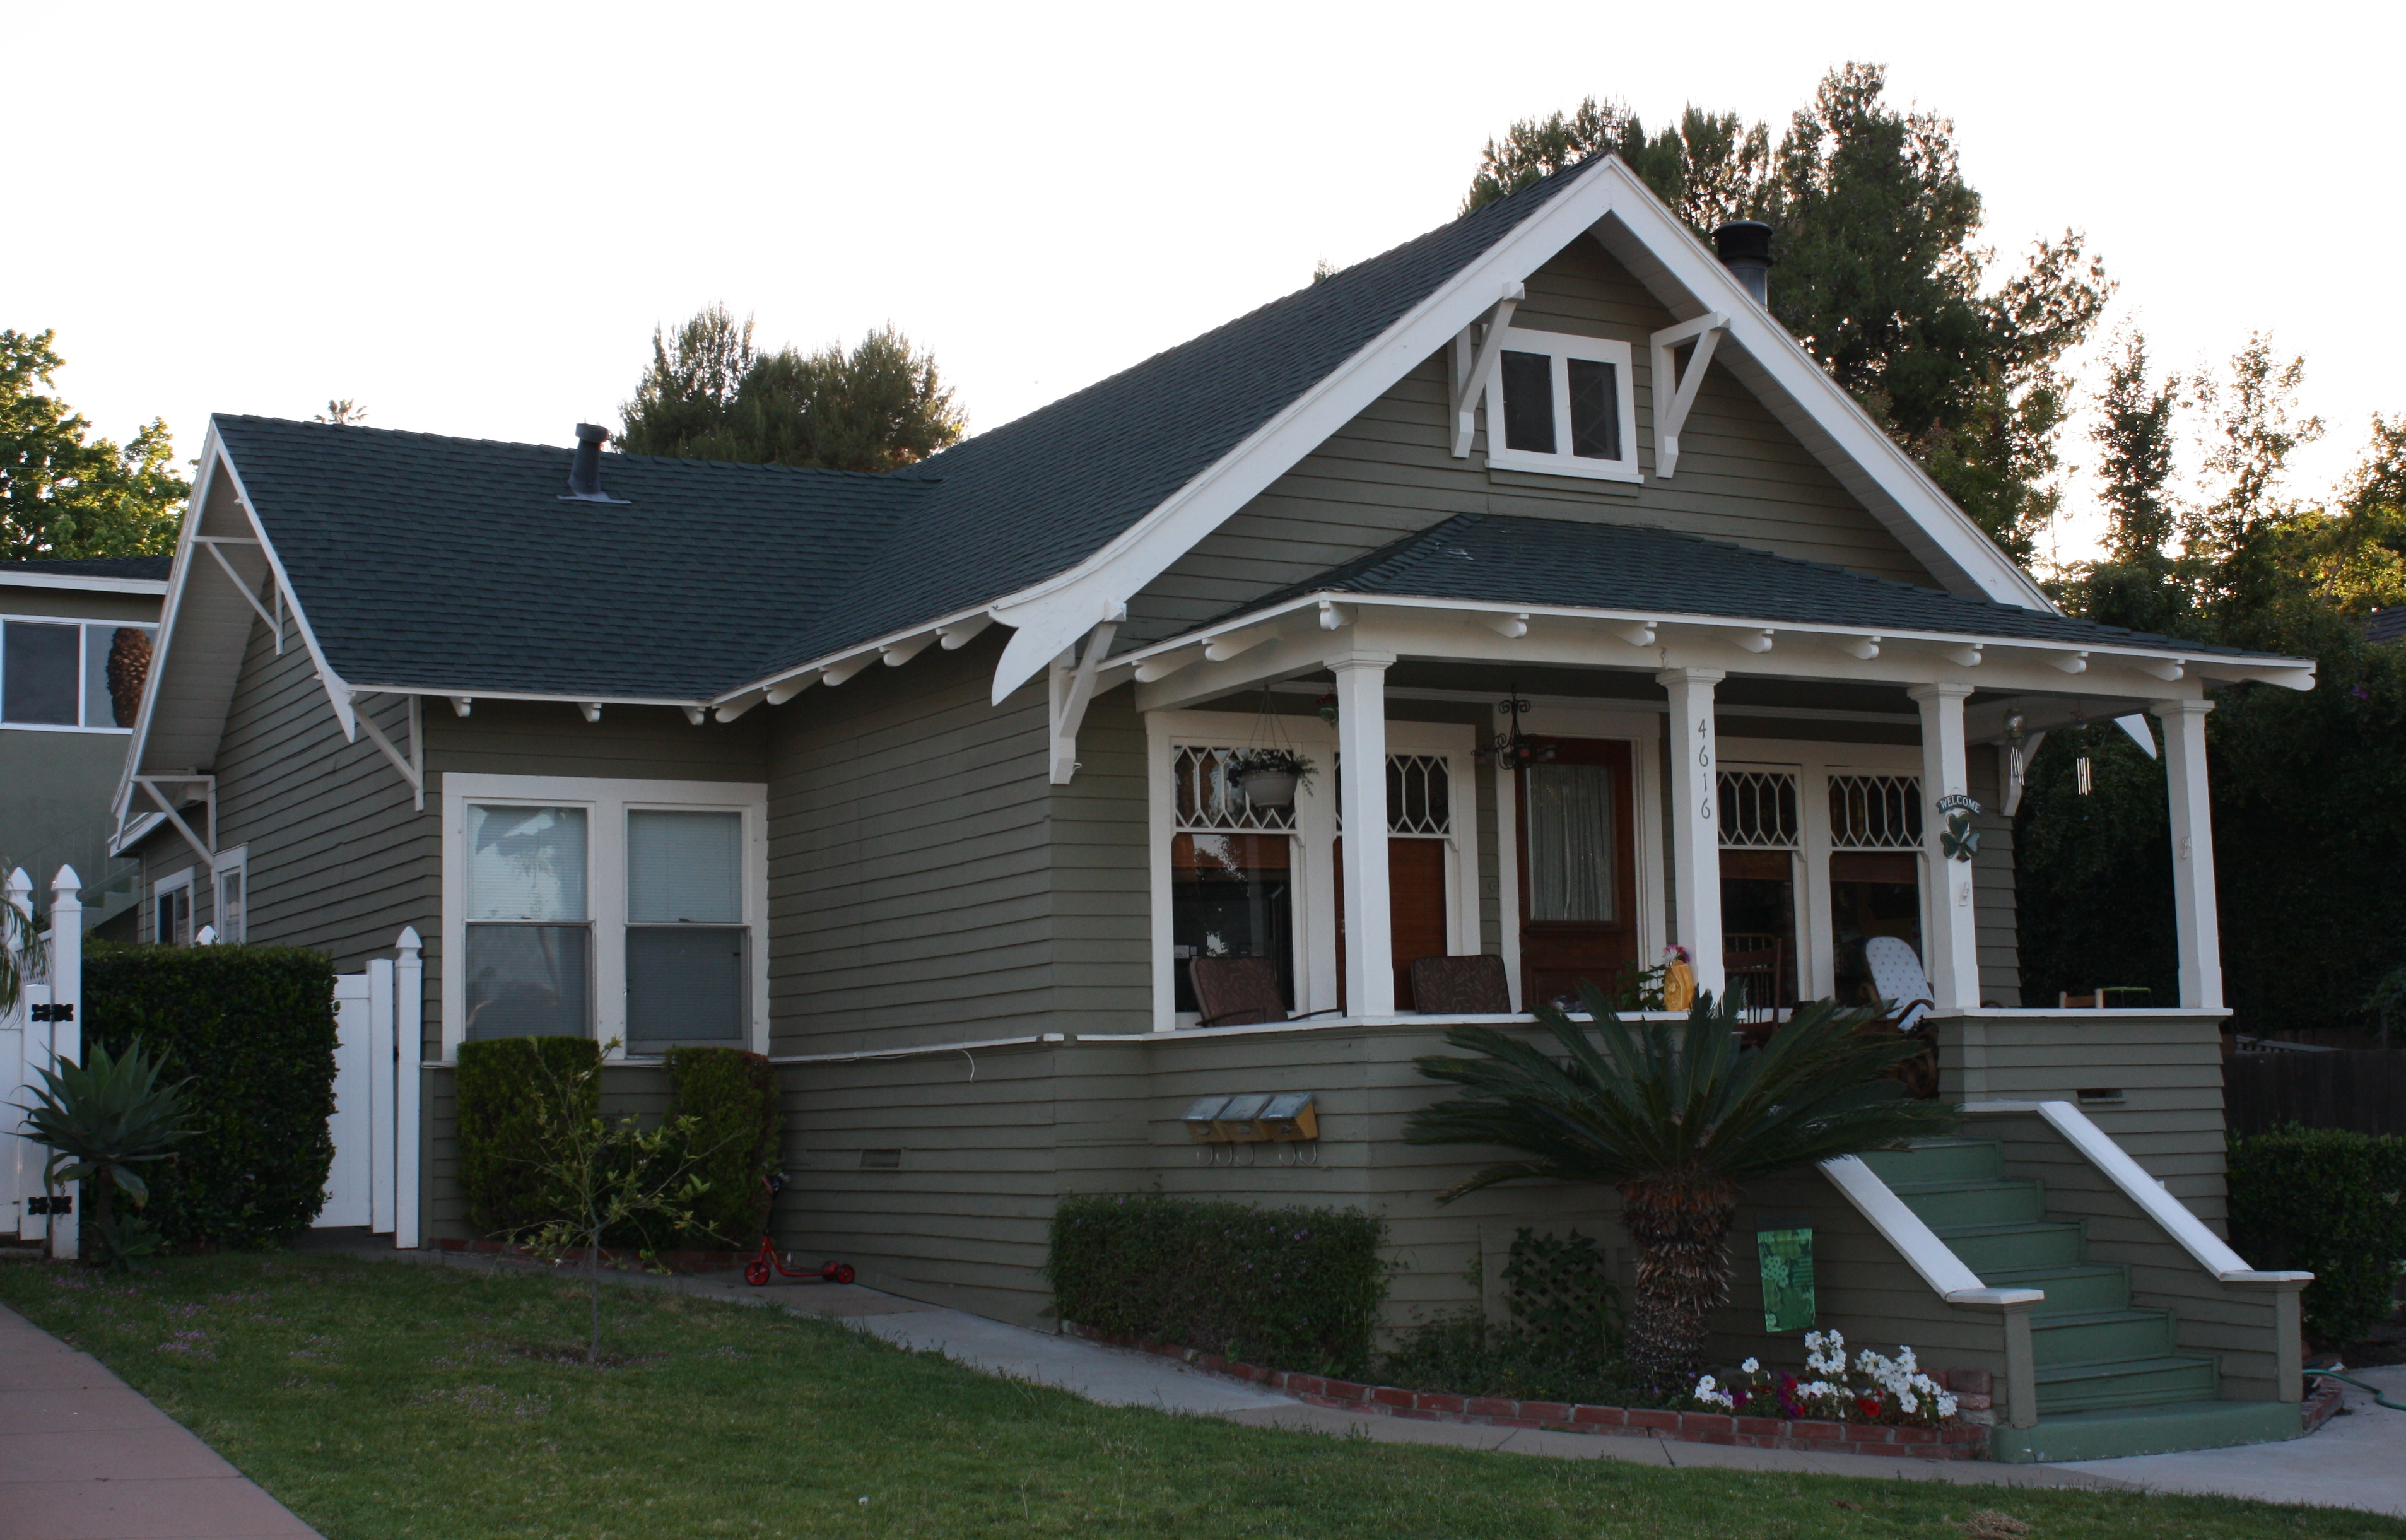 Windsor Hills Craftsman Home in La Mesa, CA